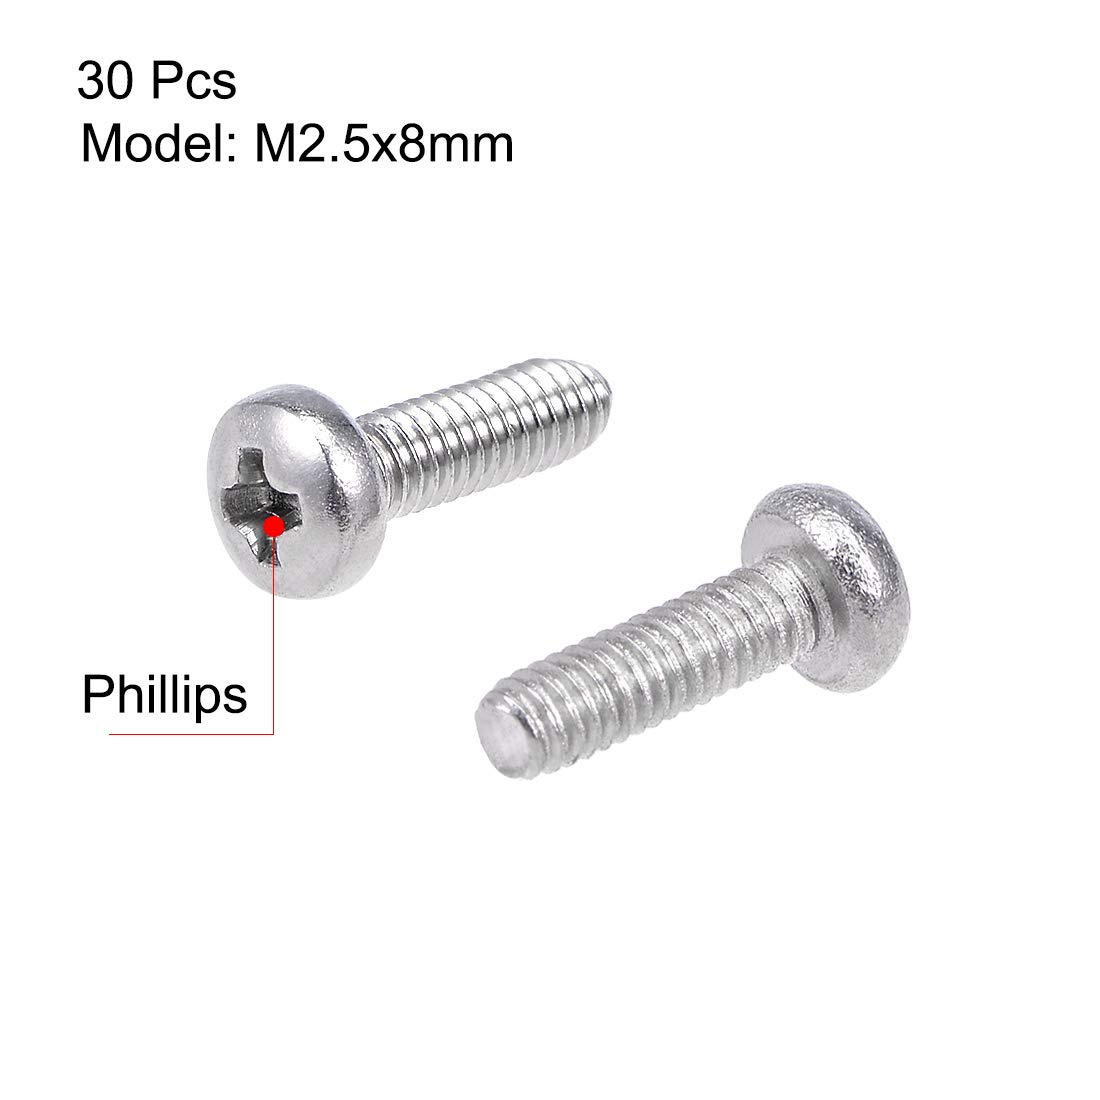 uxcell a15070200ux0102 M3 x 50mm 304 Stainless Steel Phillips Pan Head Screws Bolt Pack of 60